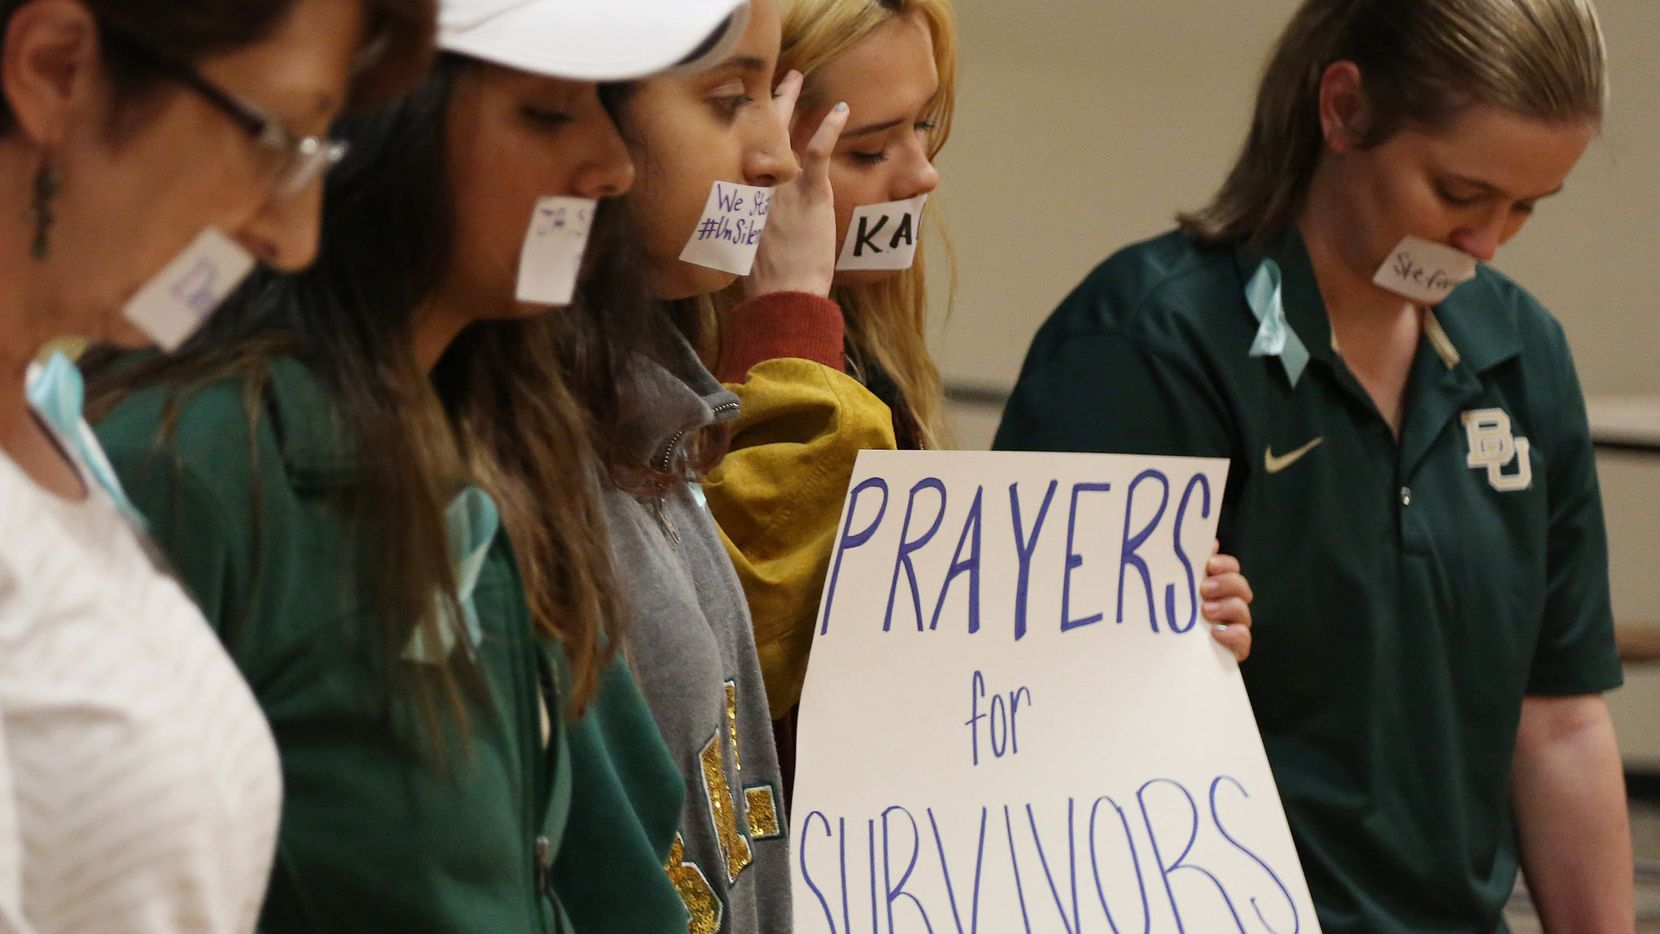 Current and former Baylor students held a rally warning of sexually assaults on and off campus earlier this month. Calling the rally Un-silence the Survivors, they observed a moment of silence and then read an open letter to the administration about improvements on how the school should handle sexual assaults.